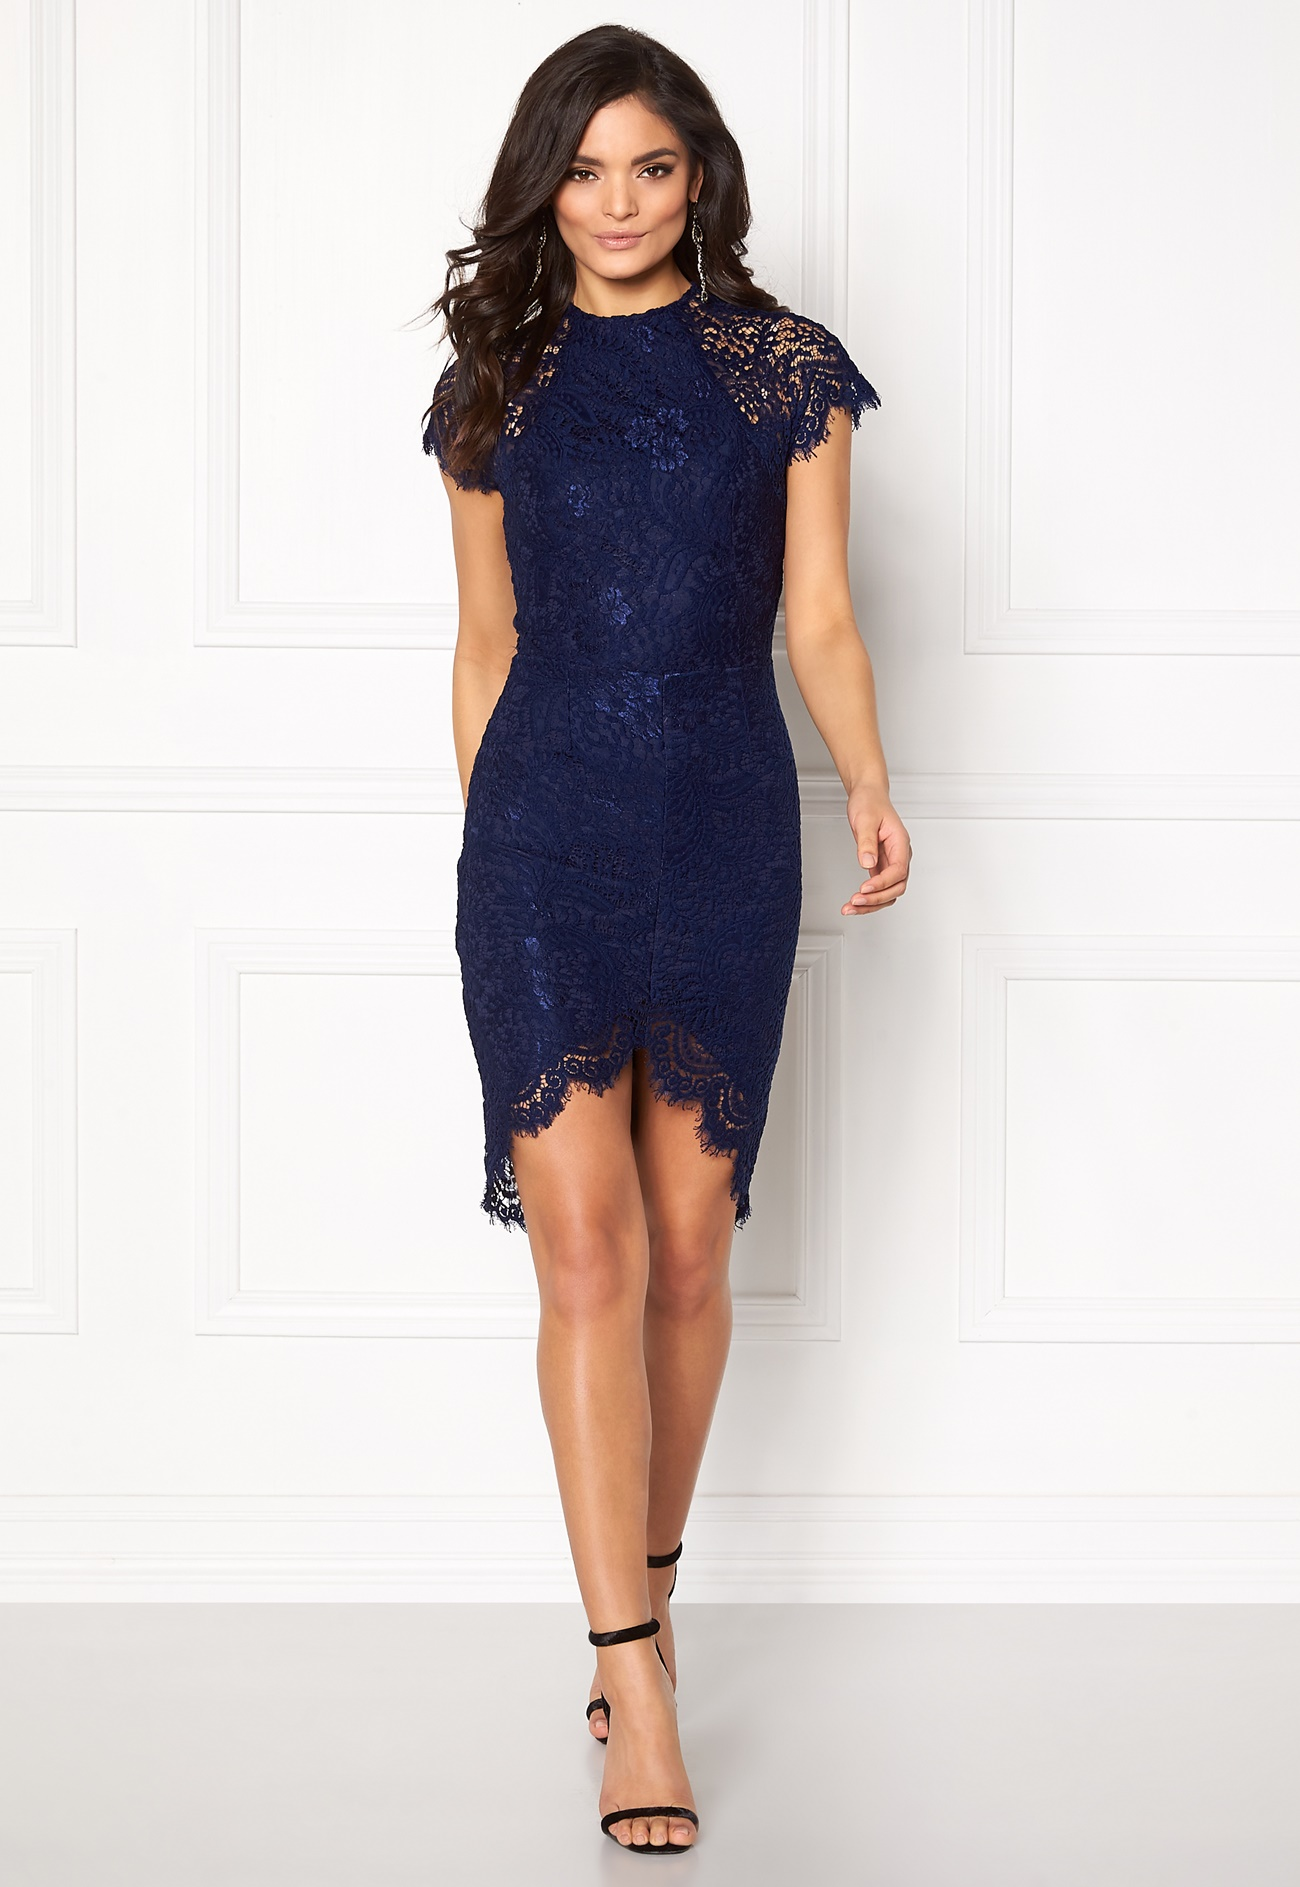 What Color Shoes With A Navy Lace Dress